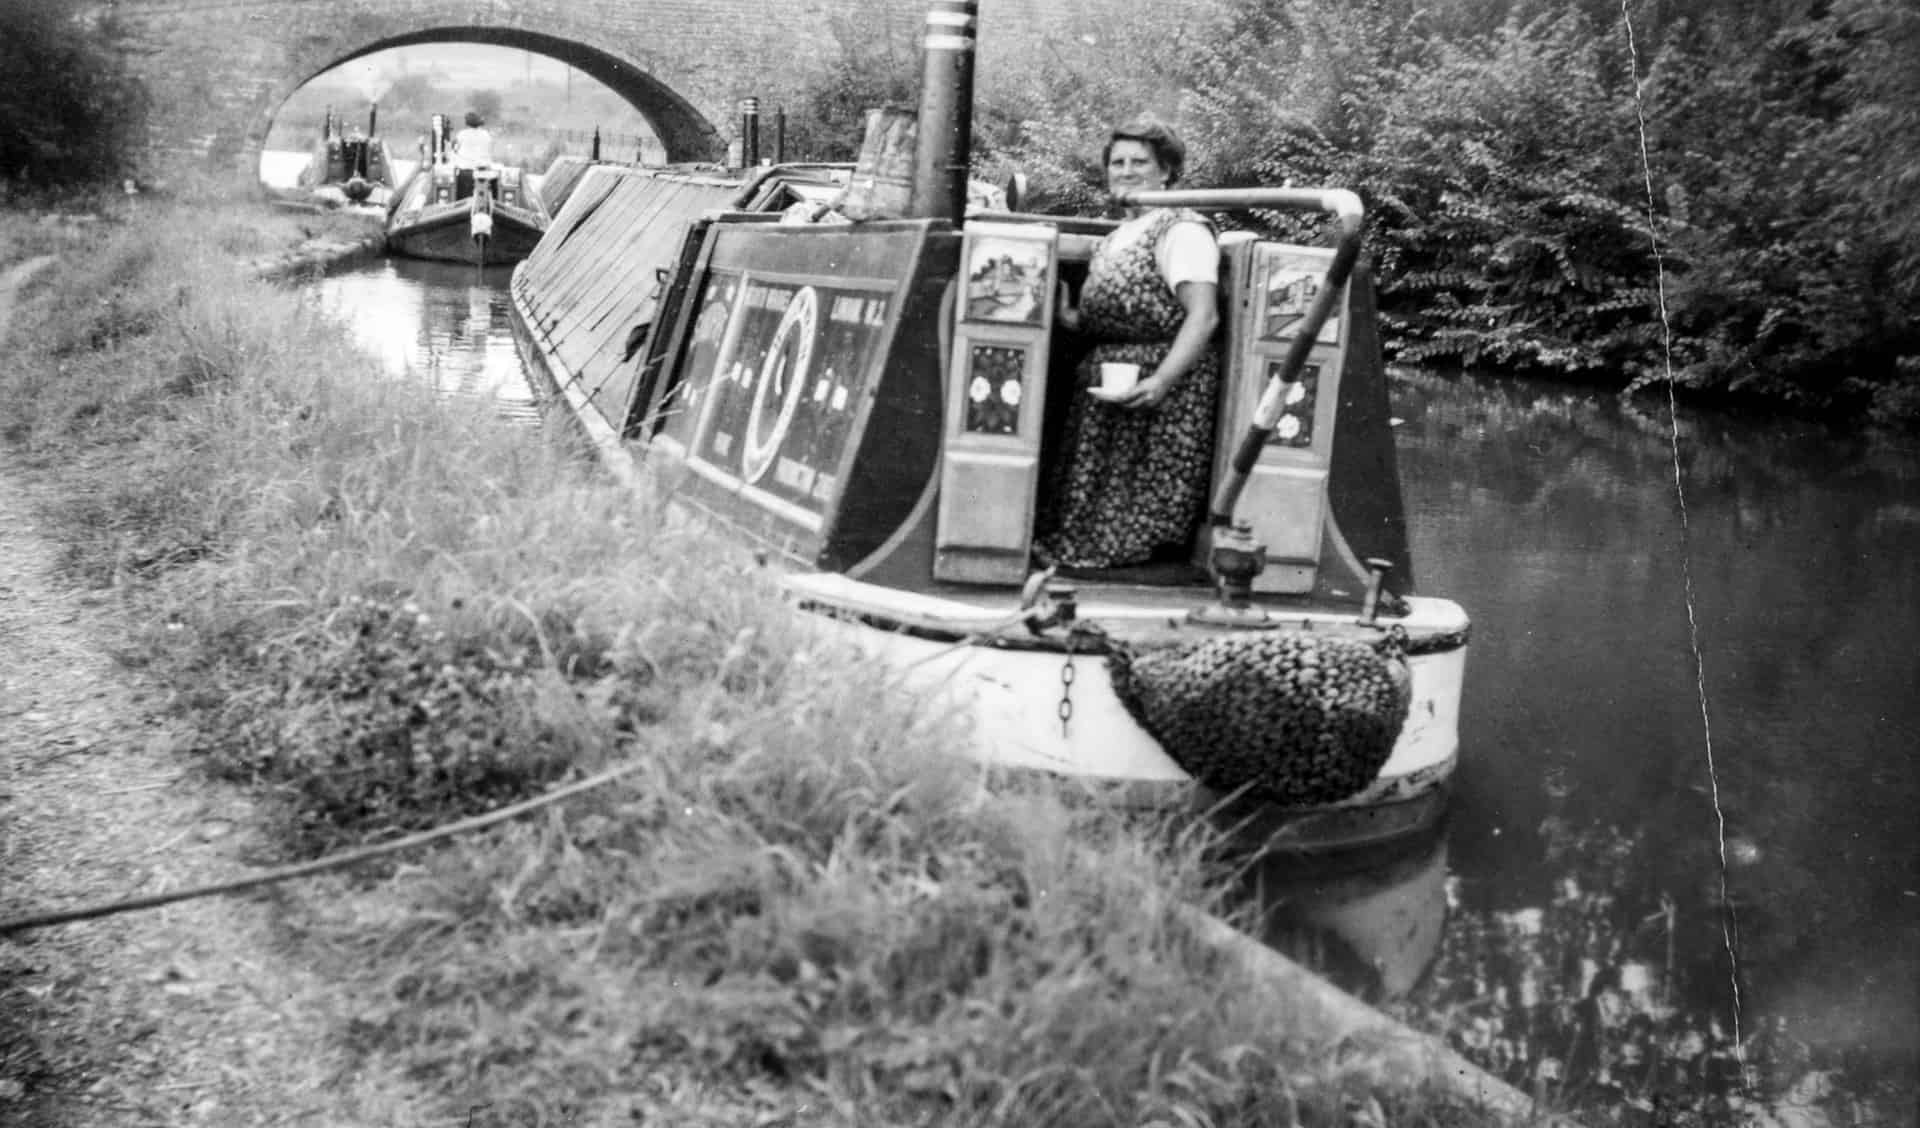 Busy canal scene, location unknown, c 1950s